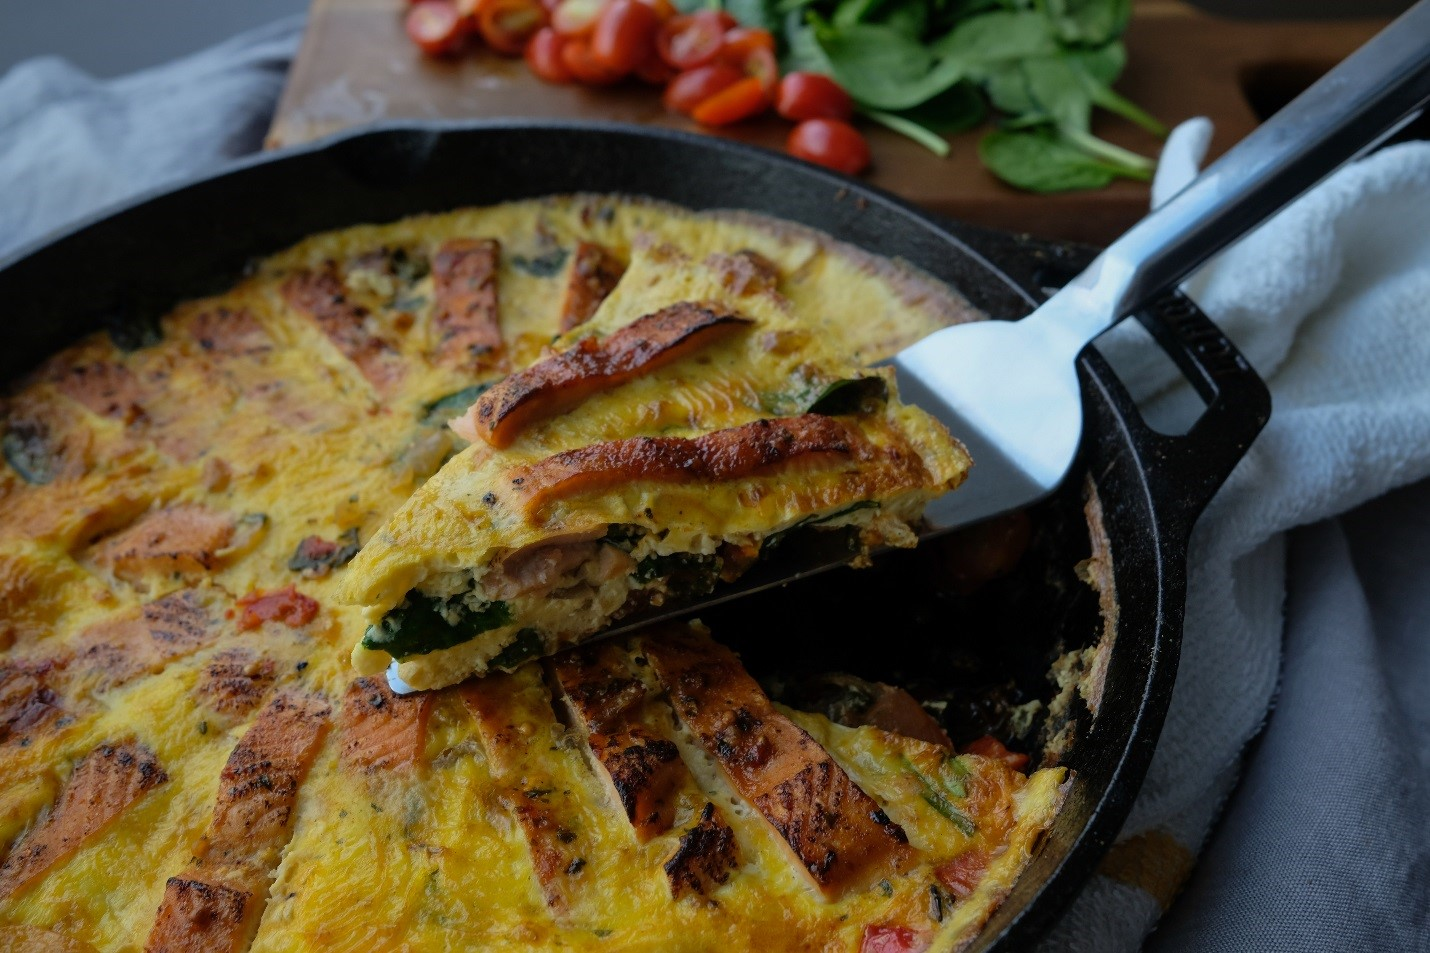 Smokey Applewood Salmon Frittata Recipe to Help Reduce Breakfast Food Costs